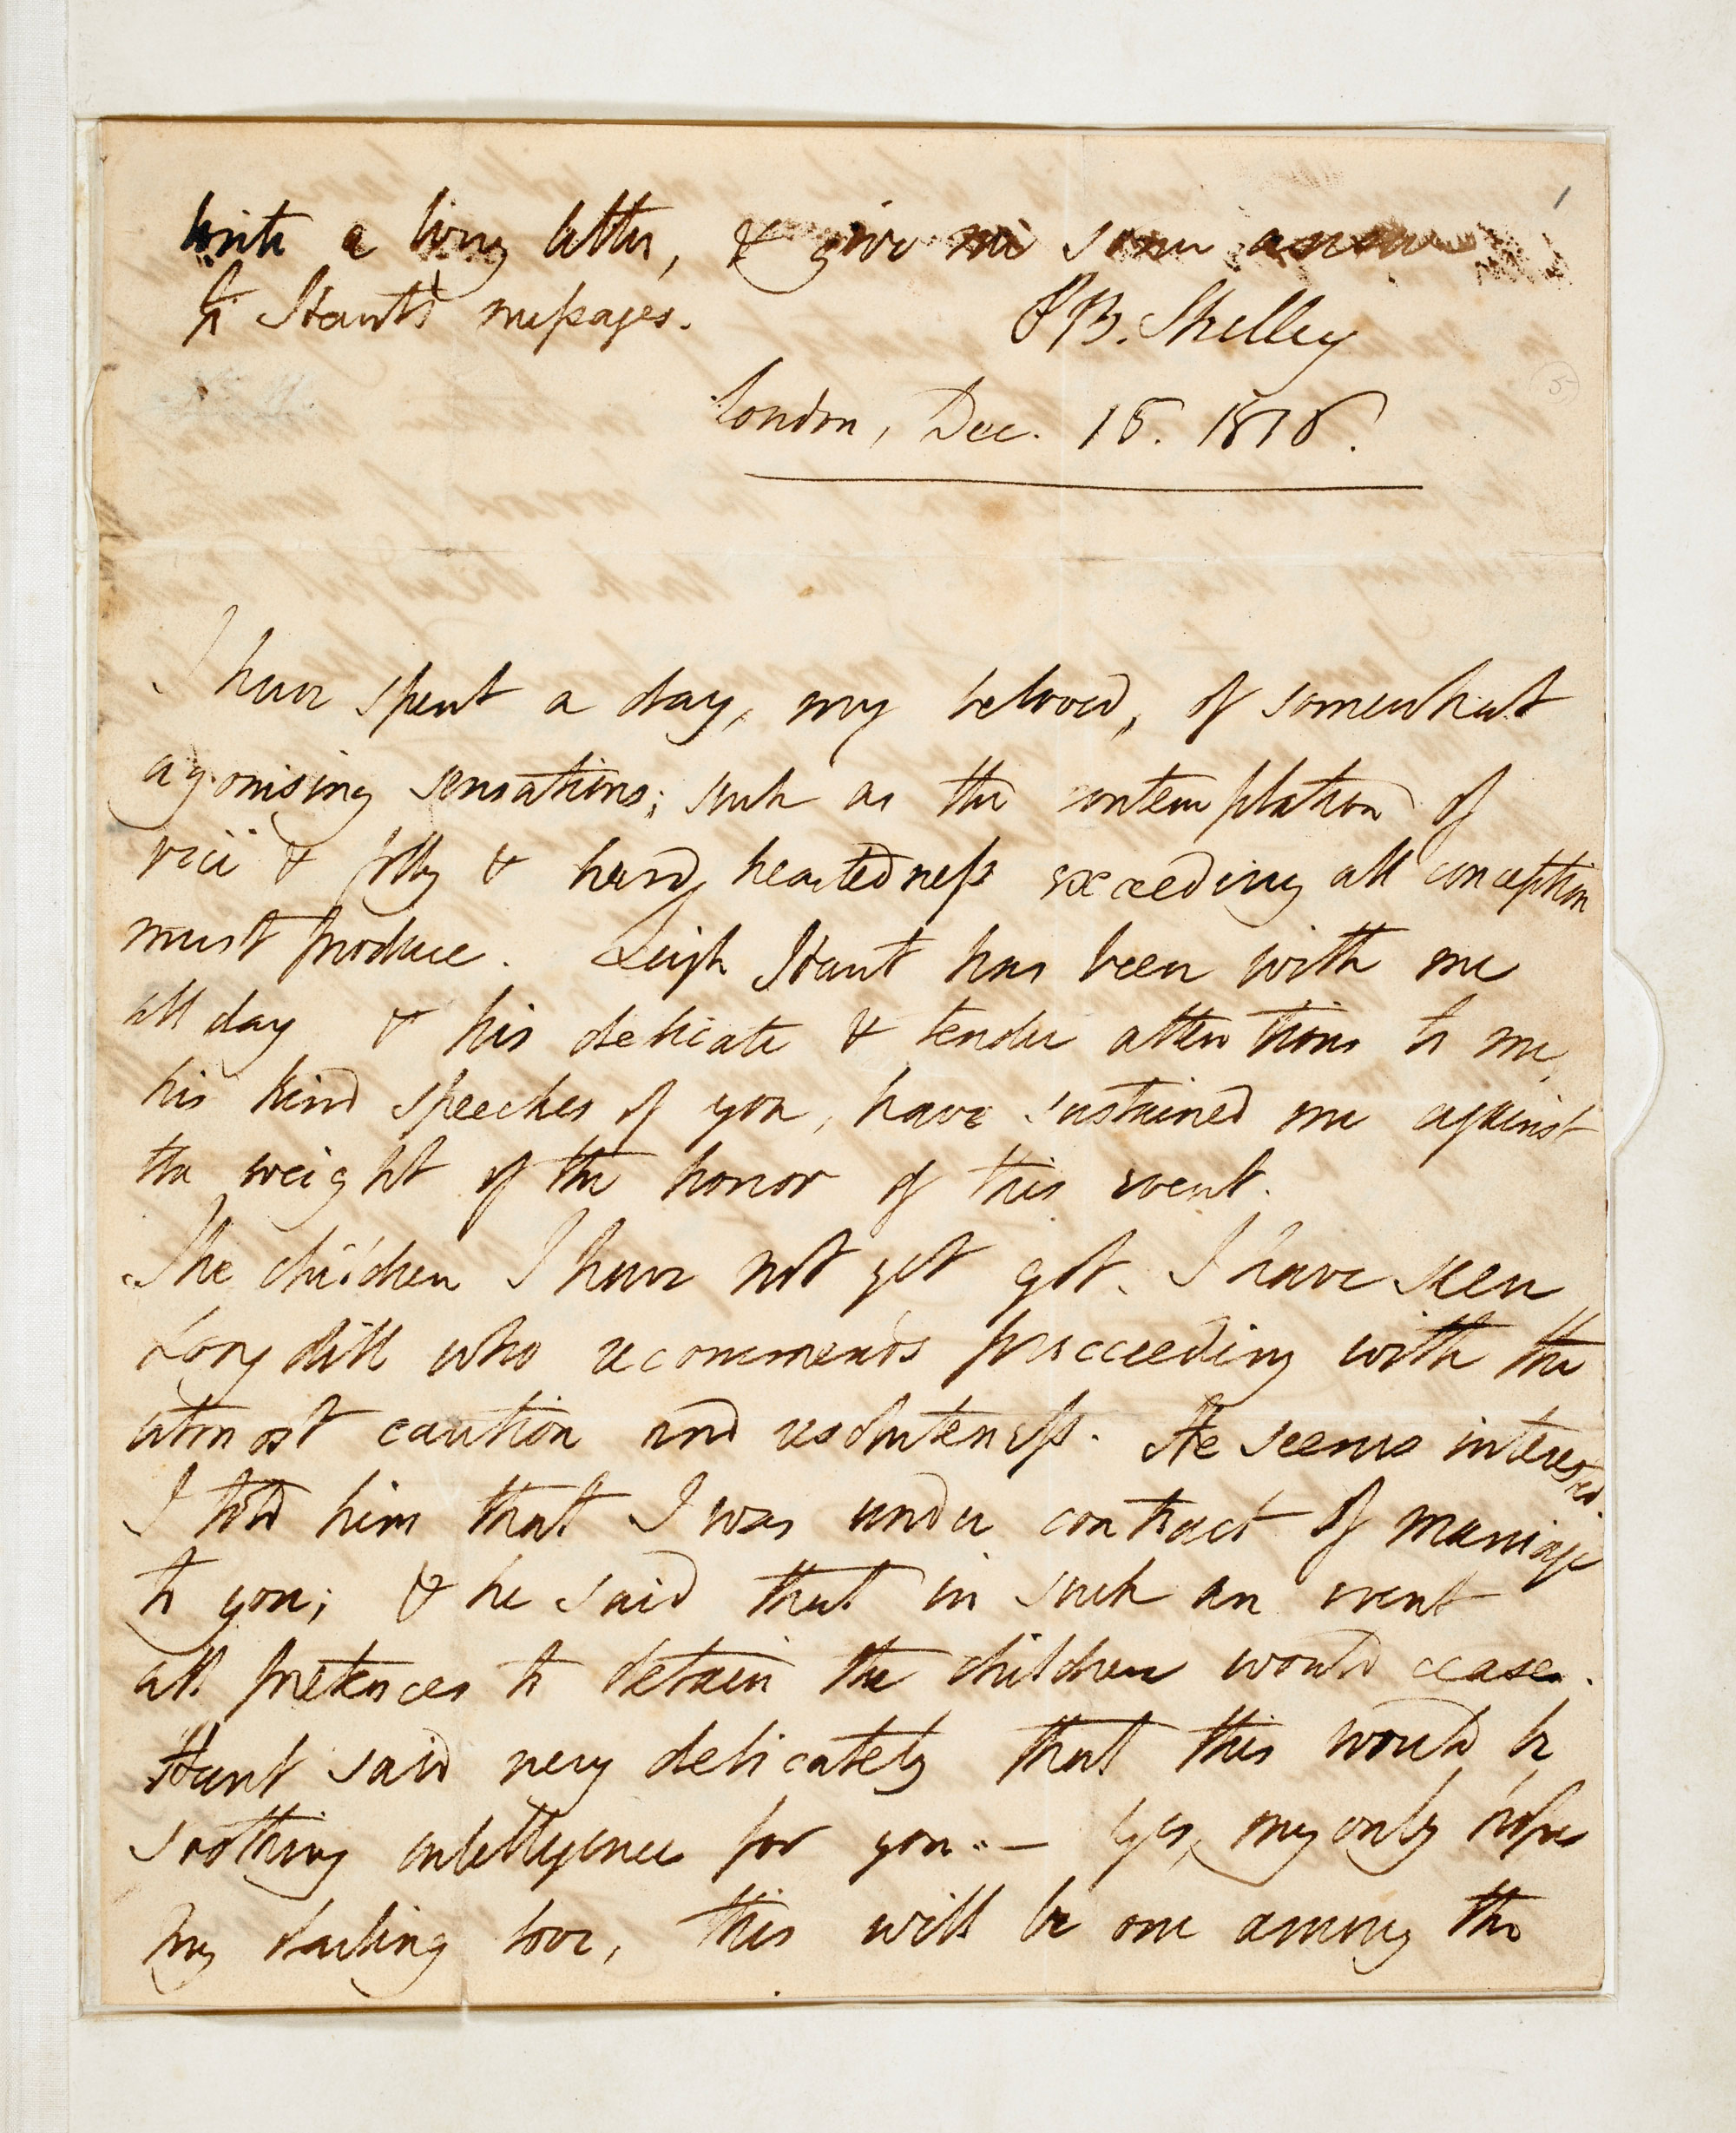 Letters concerning the relationship between P B Shelley and Mary